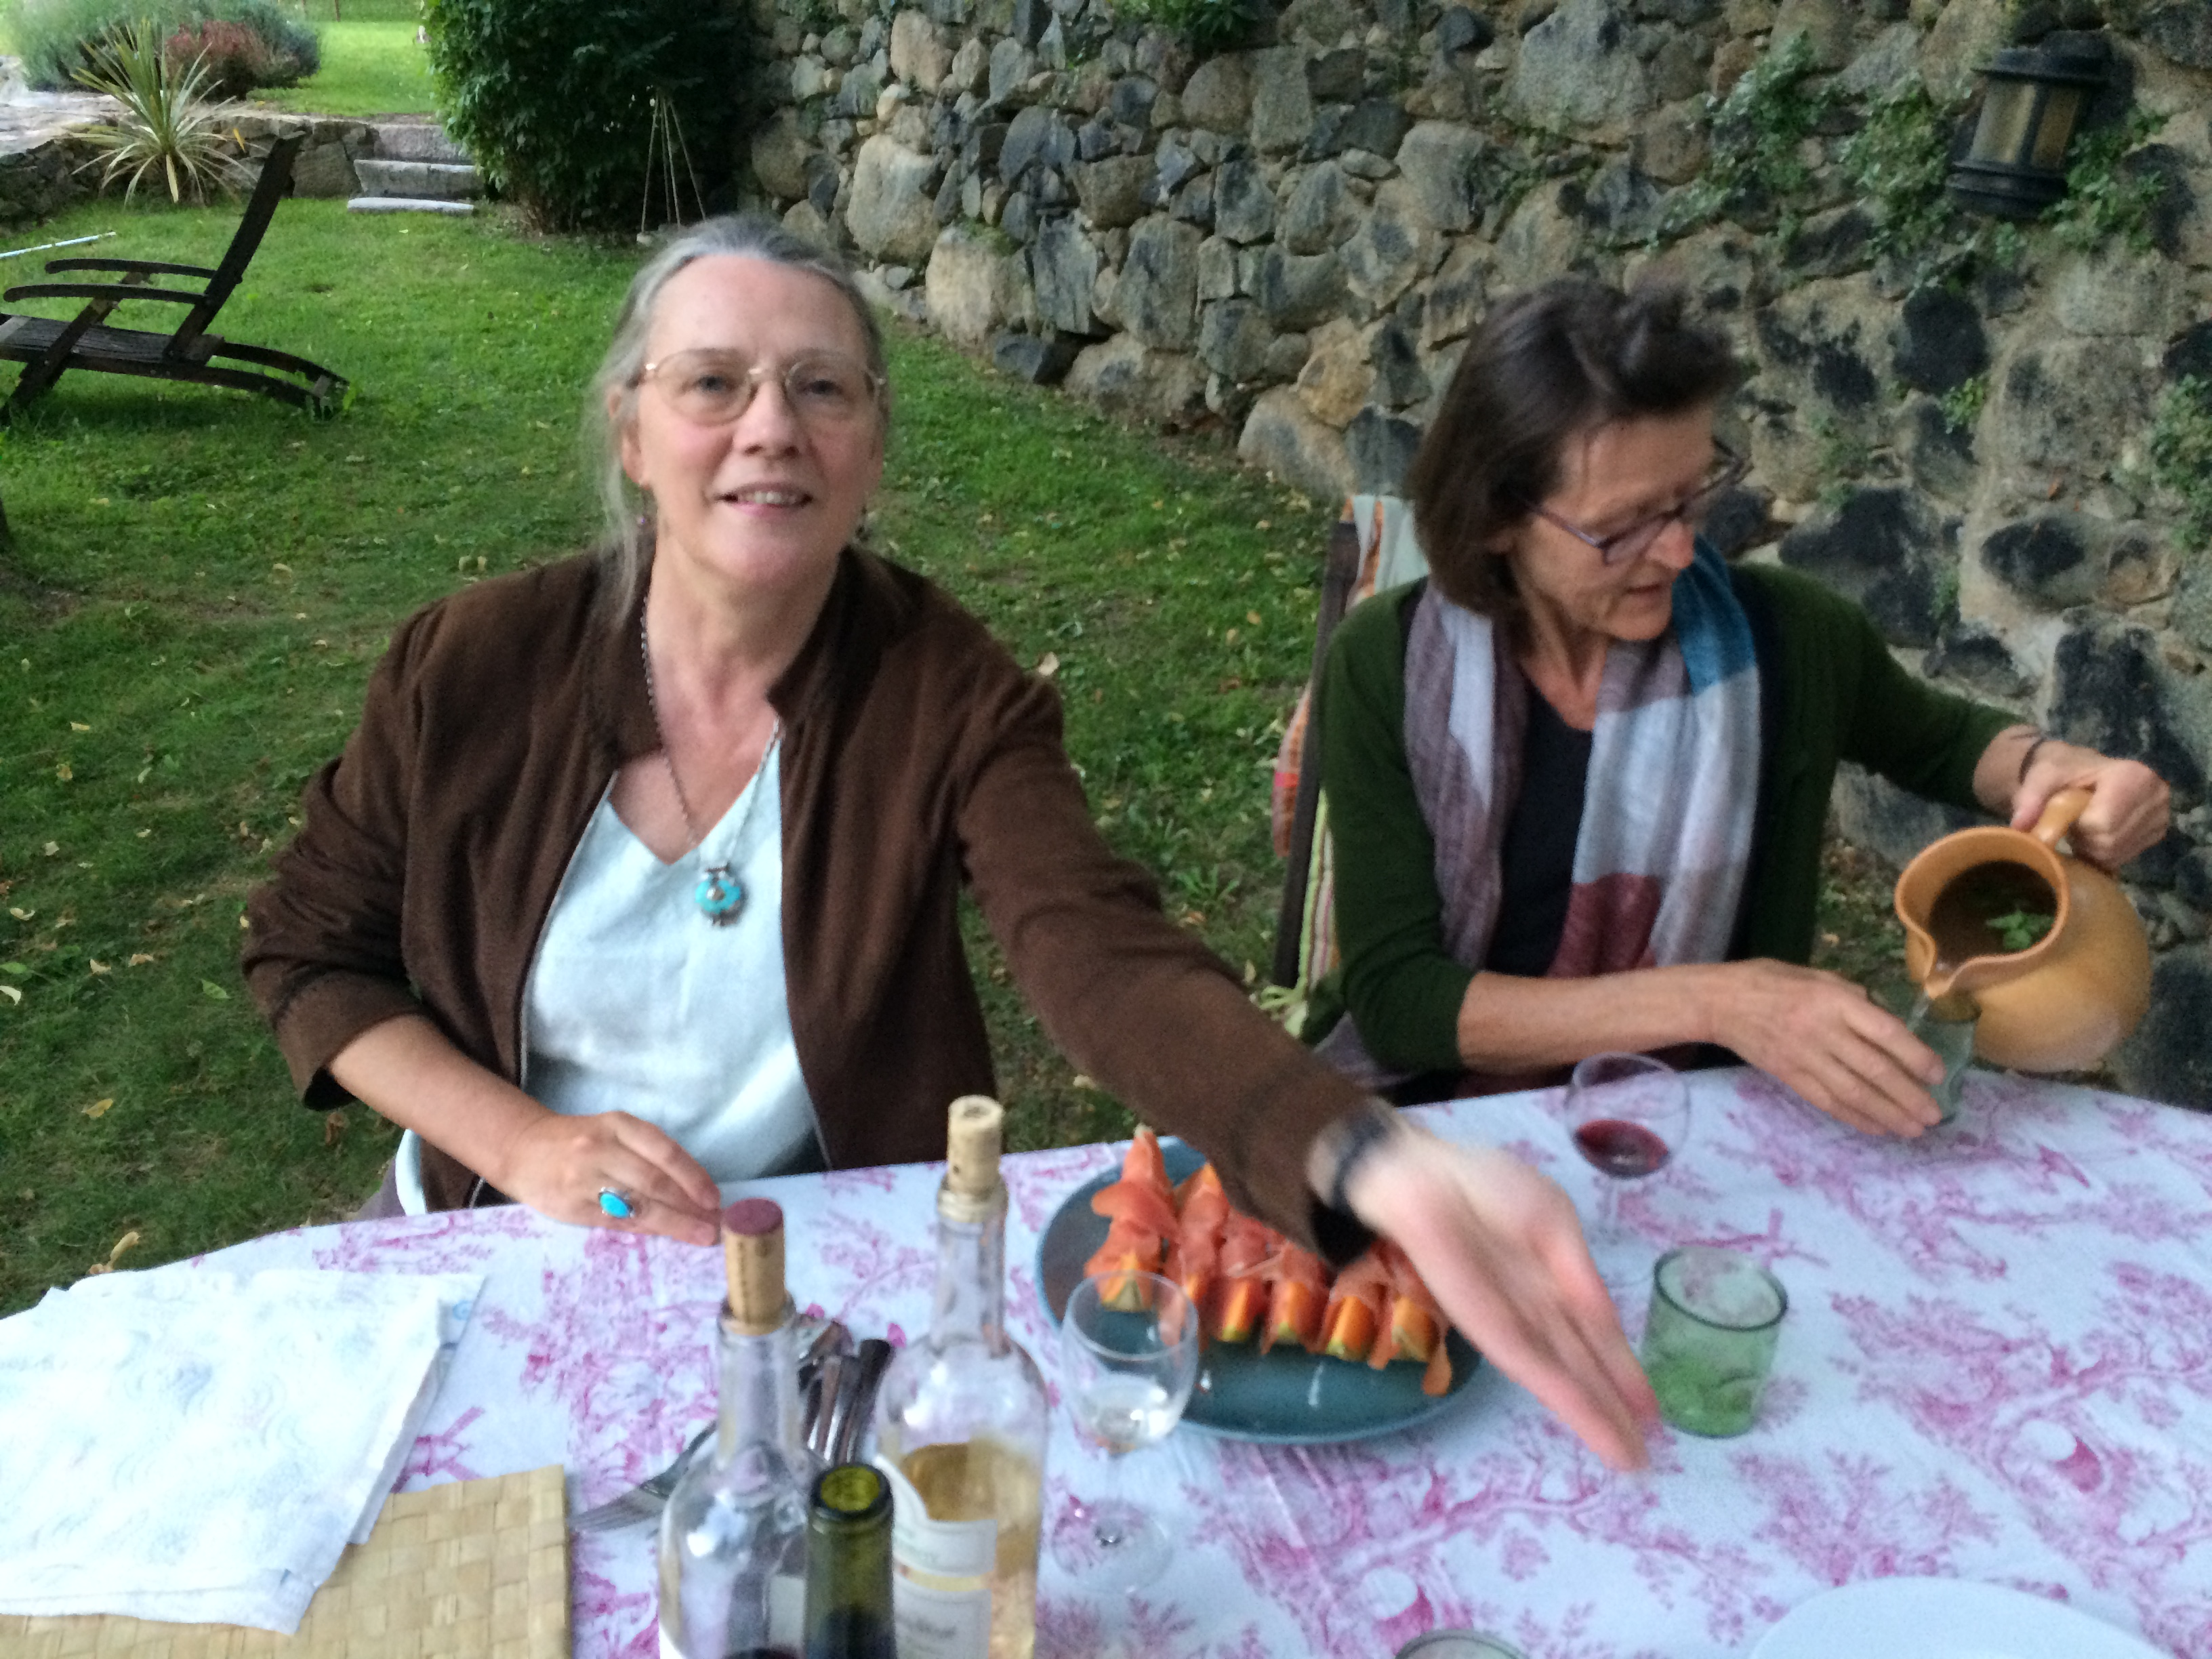 2015 - August 25, with Martha Stevns, Mosset